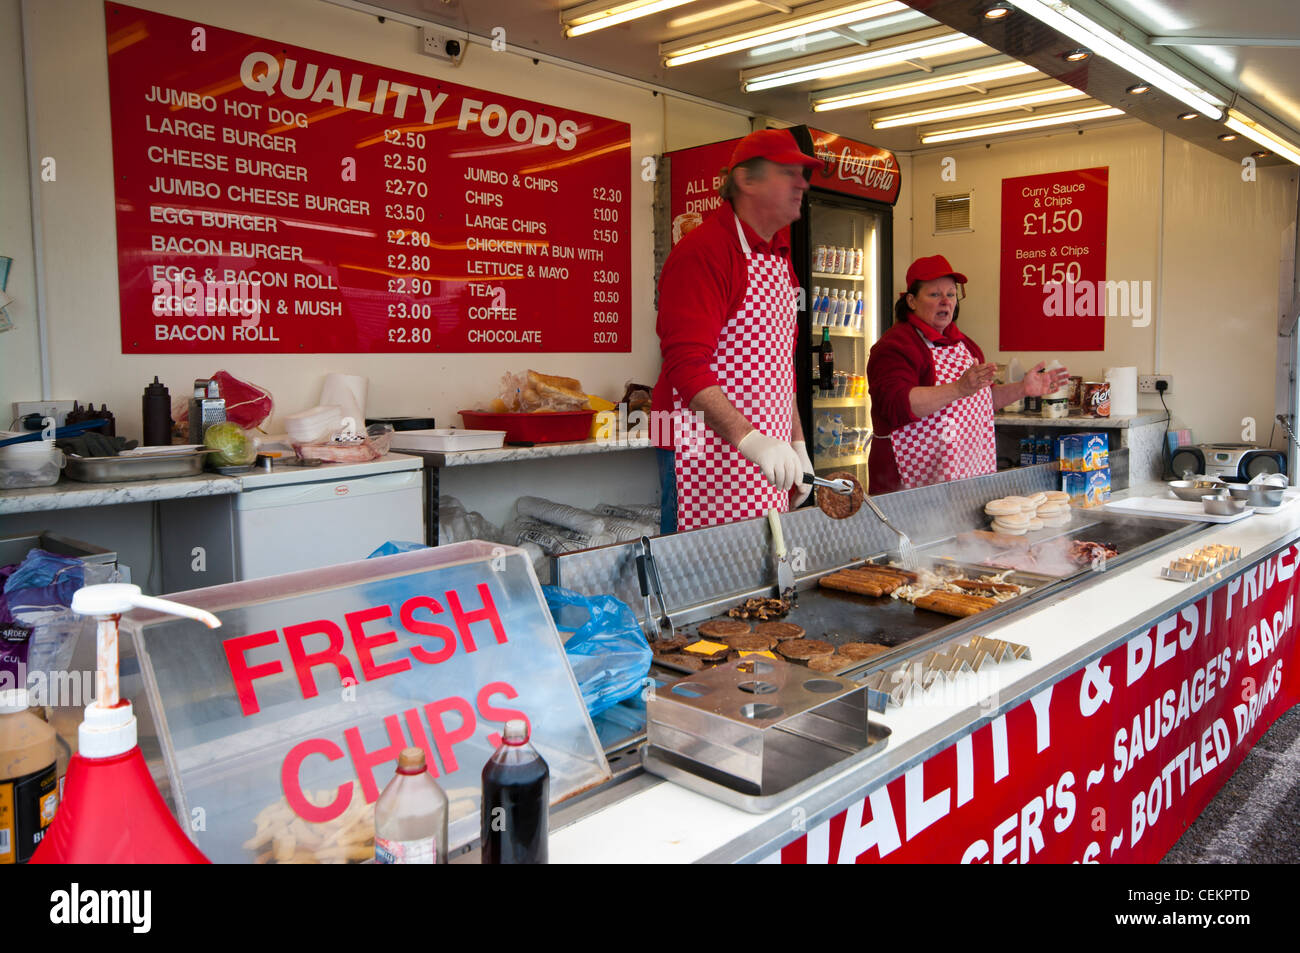 Fast Food takeaway Stall Outlet Market Retailers Refreshments Burger Hamburger Hot Dog Dogs Stalls - Stock Image